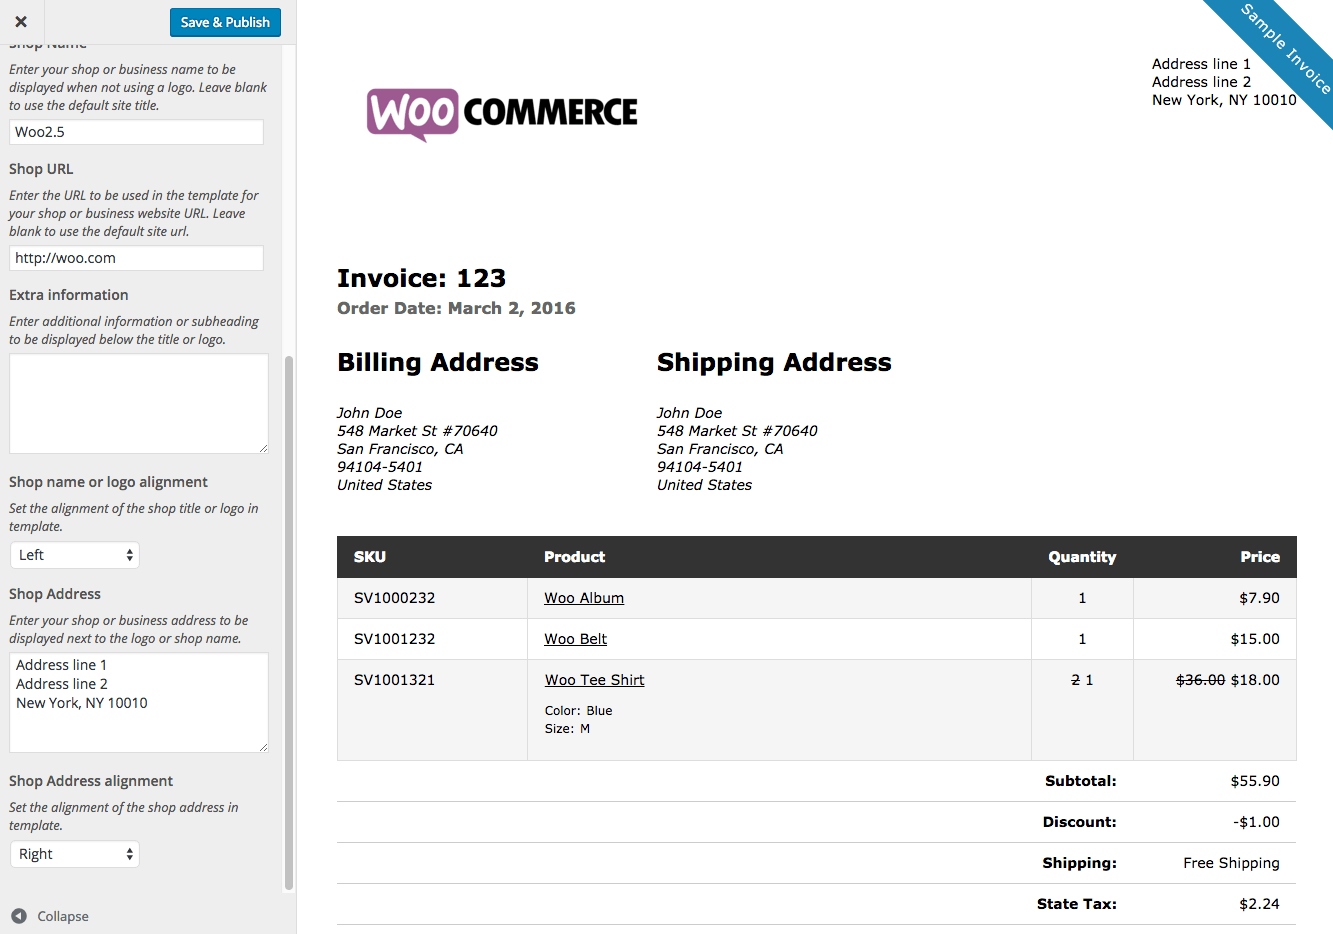 Usdgus  Stunning Print Invoices Amp Packing Lists  Woocommerce With Goodlooking Woocommerce Print Invoices  Packing Lists Customizer With Awesome Delta Ticket Receipt Also Tax Donation Receipt Template In Addition Us Postal Service Certified Mail Return Receipt And Example Of A Receipt As Well As Delivery Receipts Additionally Church Donation Receipt Template From Woocommercecom With Usdgus  Goodlooking Print Invoices Amp Packing Lists  Woocommerce With Awesome Woocommerce Print Invoices  Packing Lists Customizer And Stunning Delta Ticket Receipt Also Tax Donation Receipt Template In Addition Us Postal Service Certified Mail Return Receipt From Woocommercecom